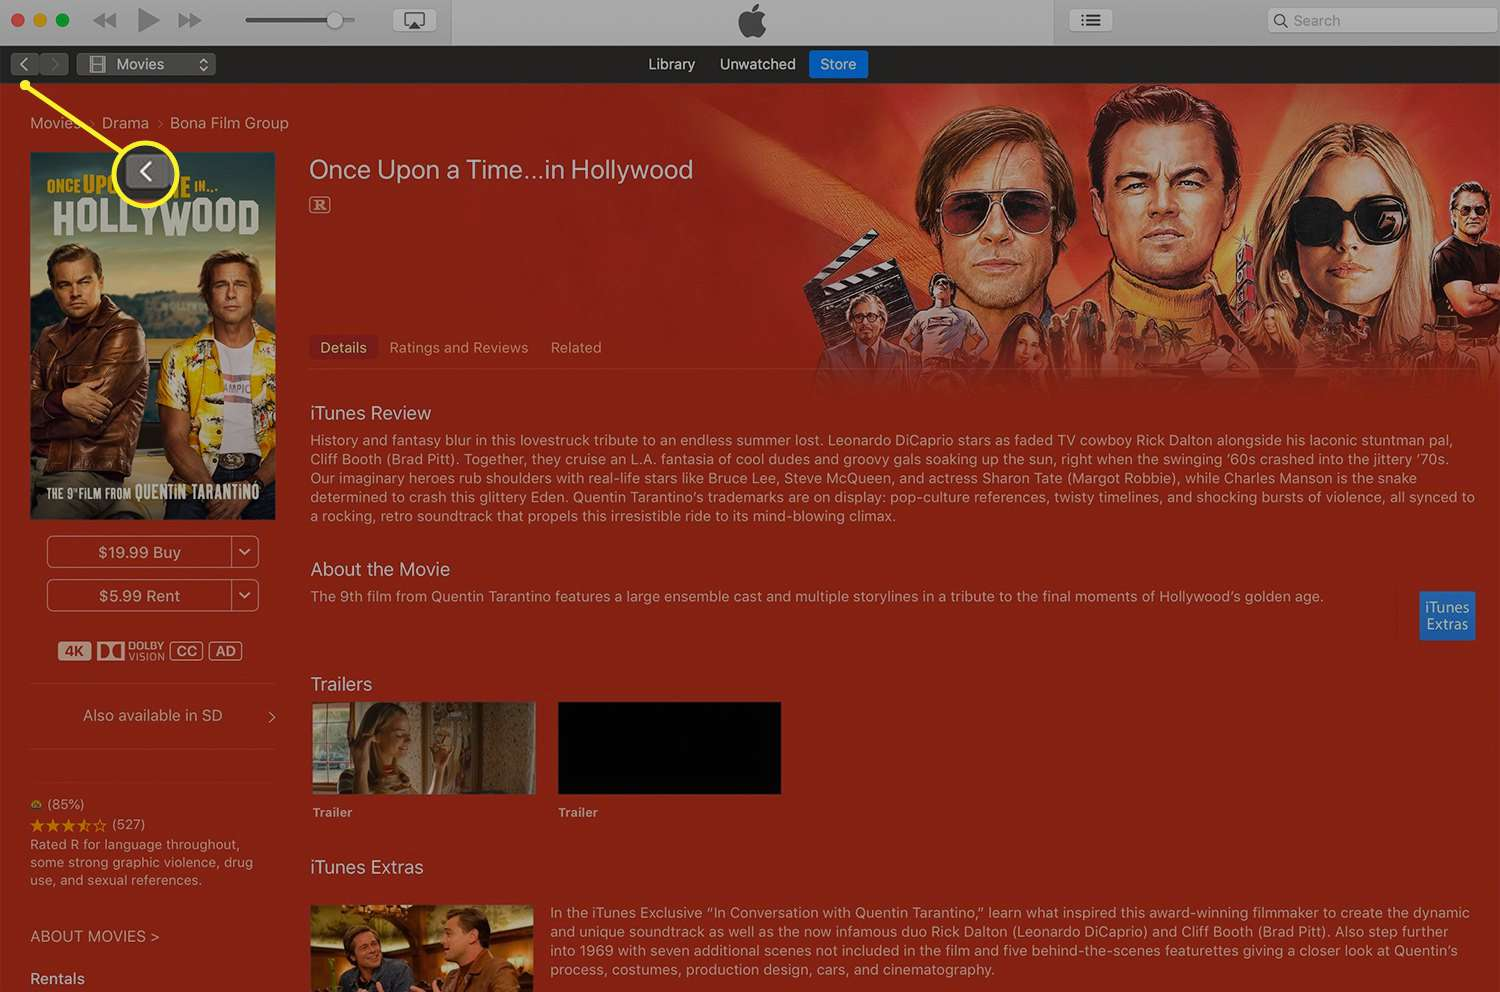 A movie information screen in iTunes